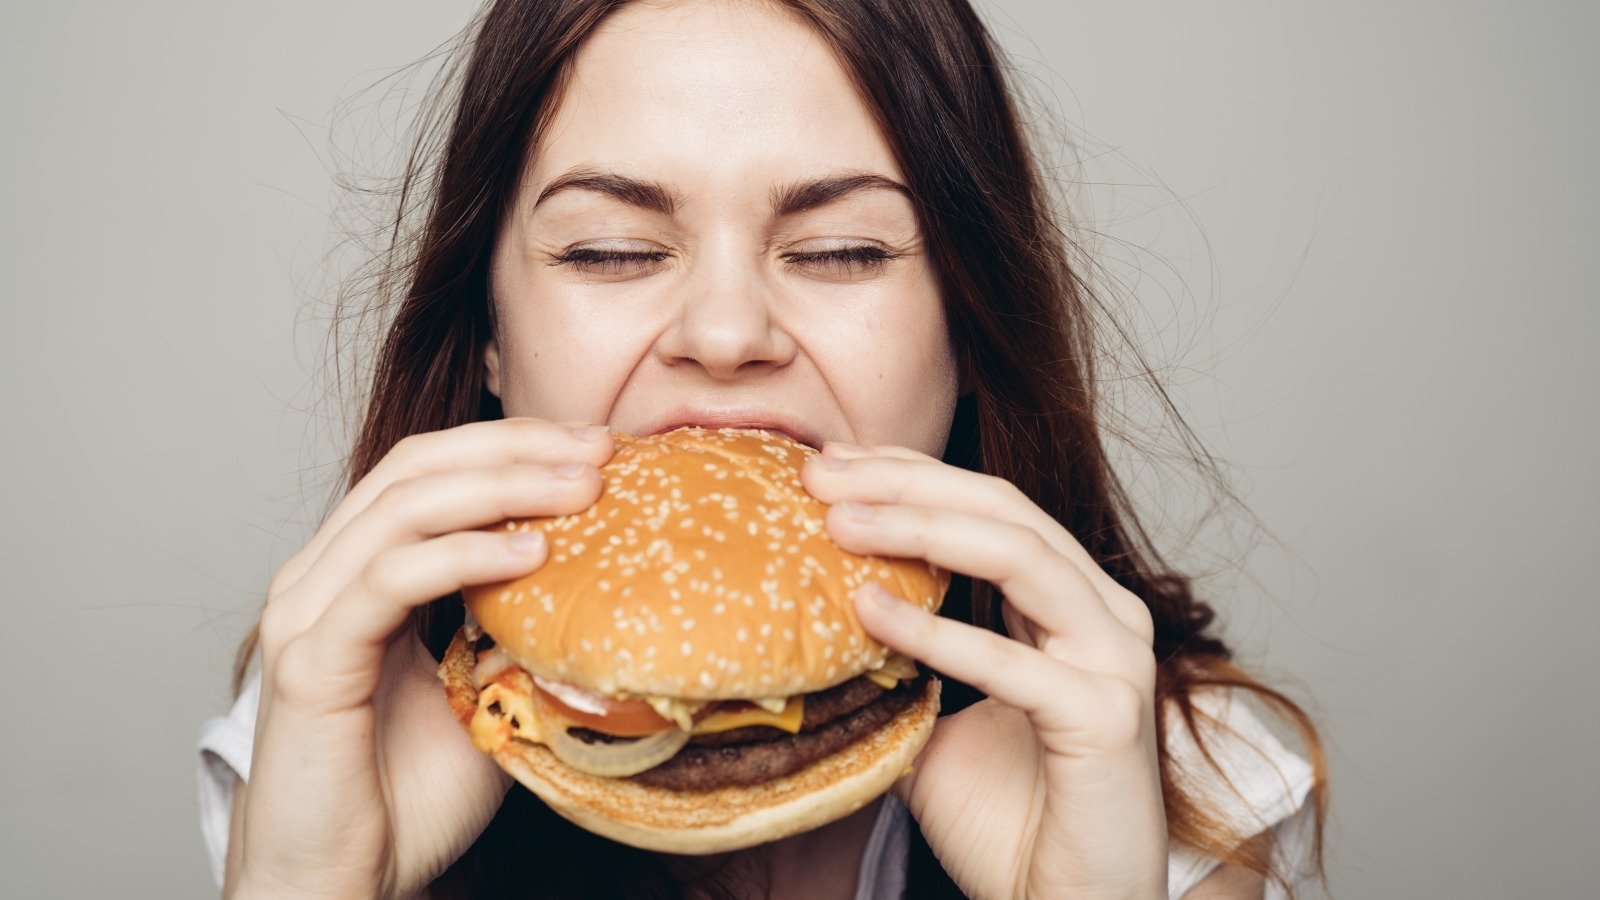 The Surprising Number Of Calories The Average American Eats Every Day